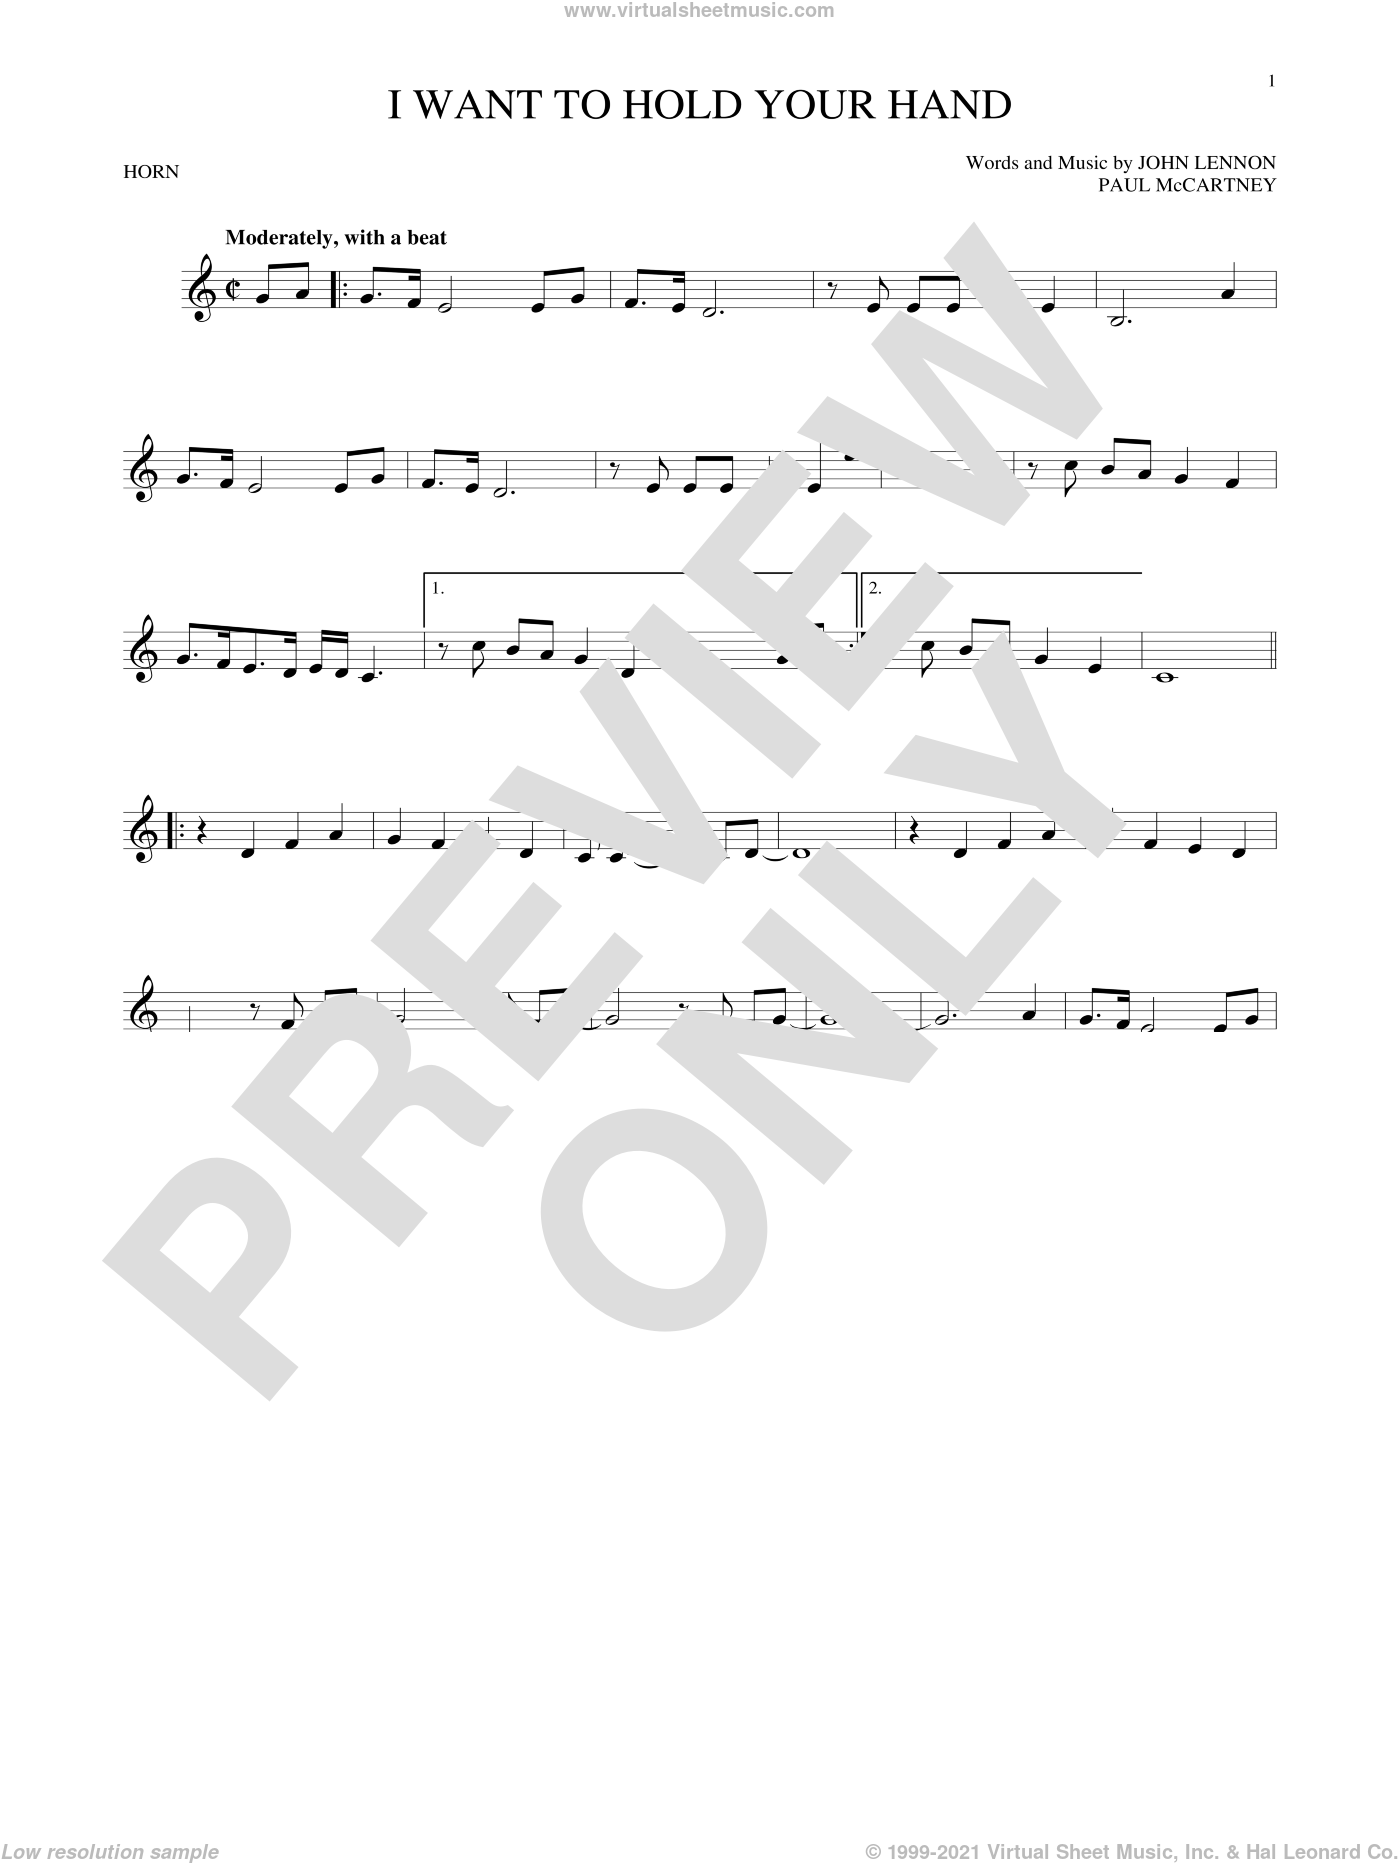 I Want To Hold Your Hand sheet music for horn solo by The Beatles, John Lennon and Paul McCartney, intermediate skill level